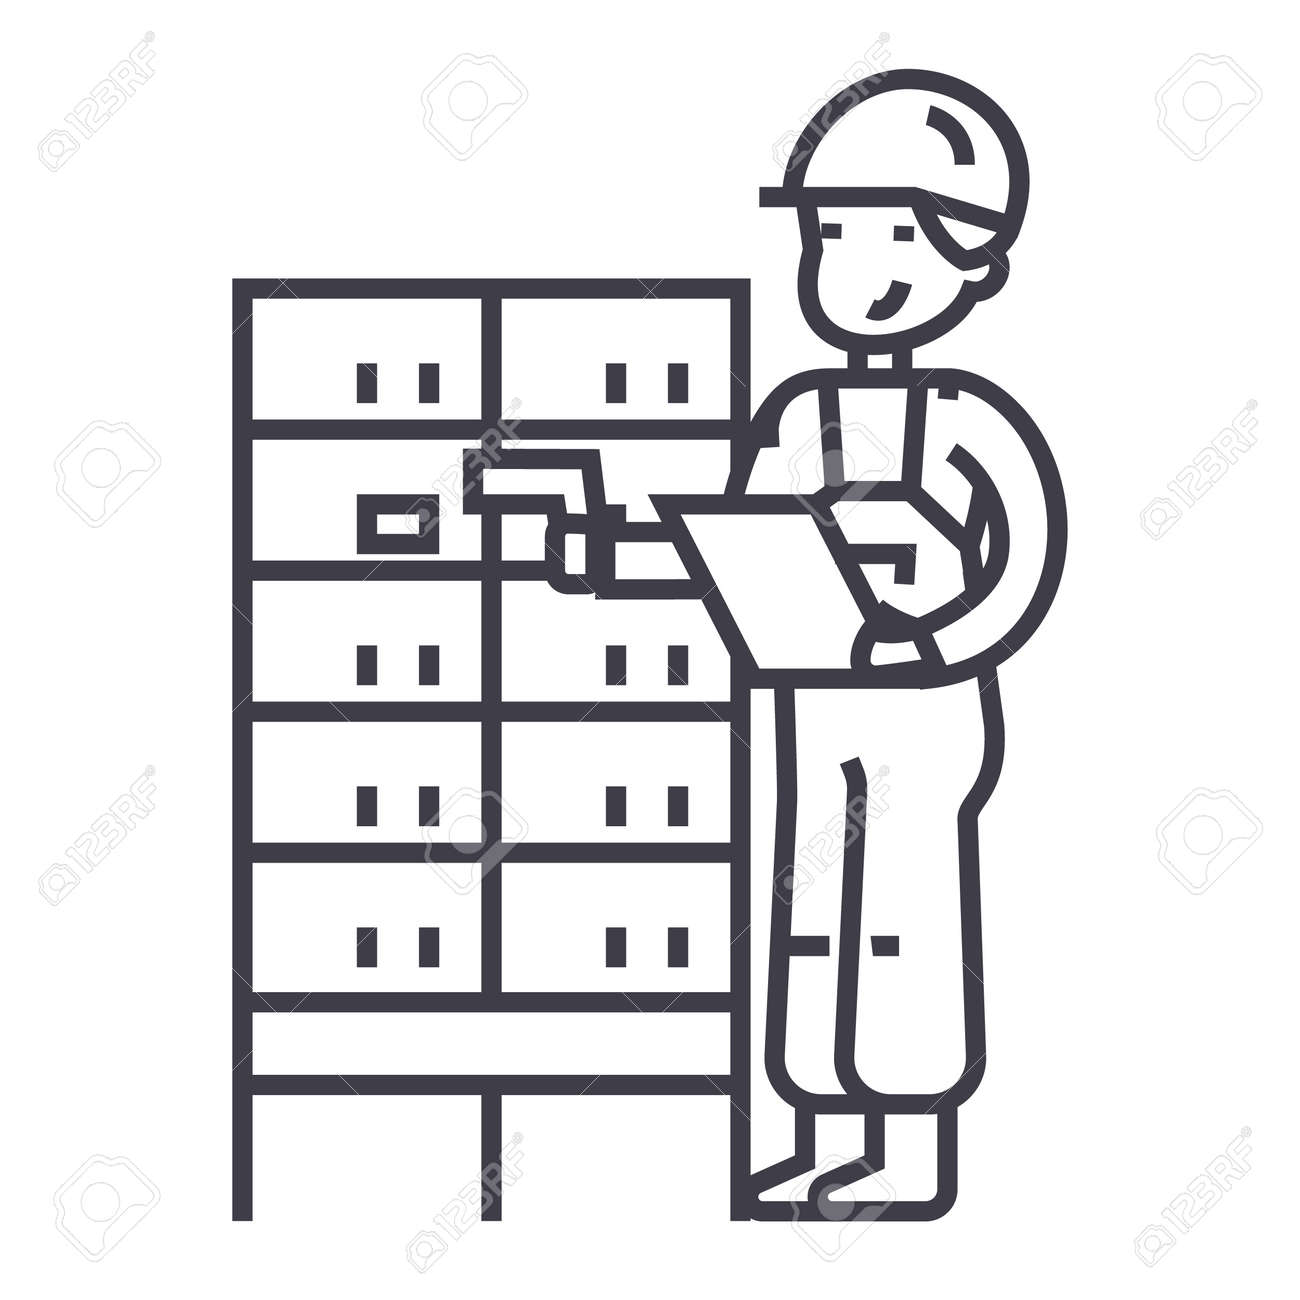 Warehouse Delivery Man Checking Barcode On Post Boxes Vector Royalty Free Cliparts Vectors And Stock Illustration Image 87221286